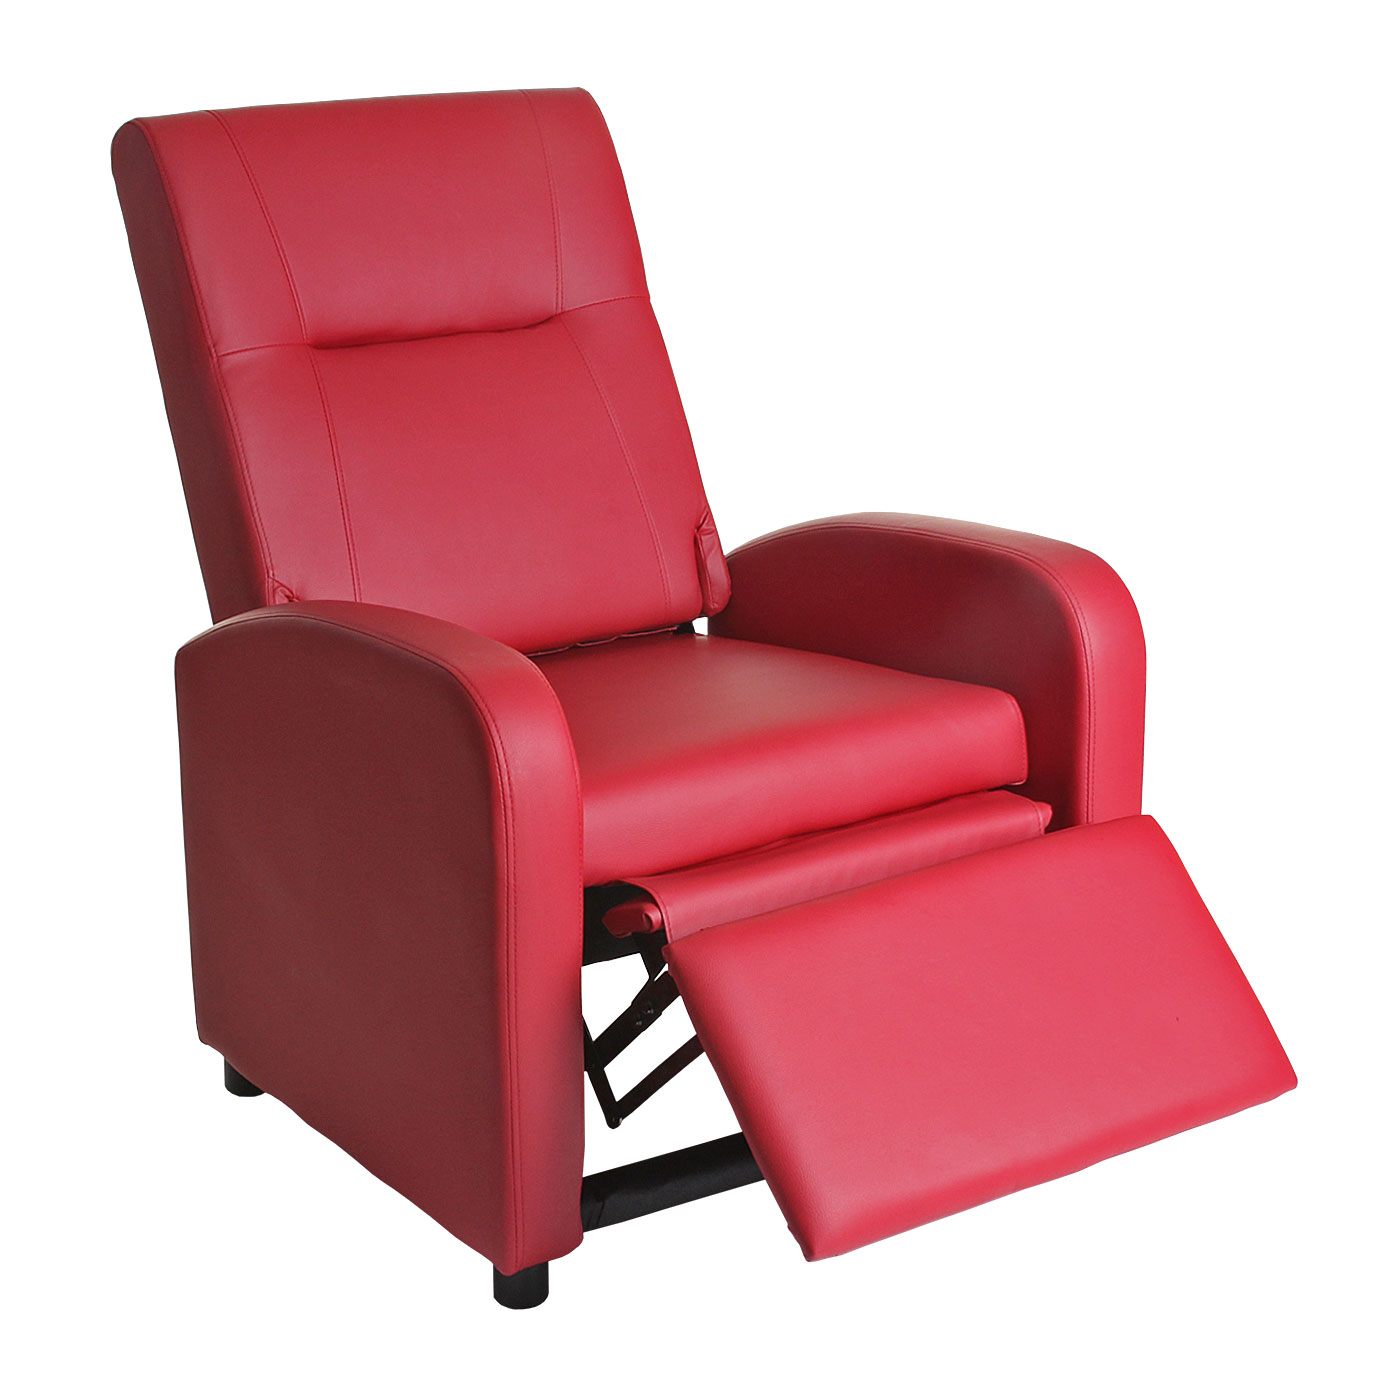 Fernsehsessel denver basic relaxsessel relaxliege sessel for Sessel in rot